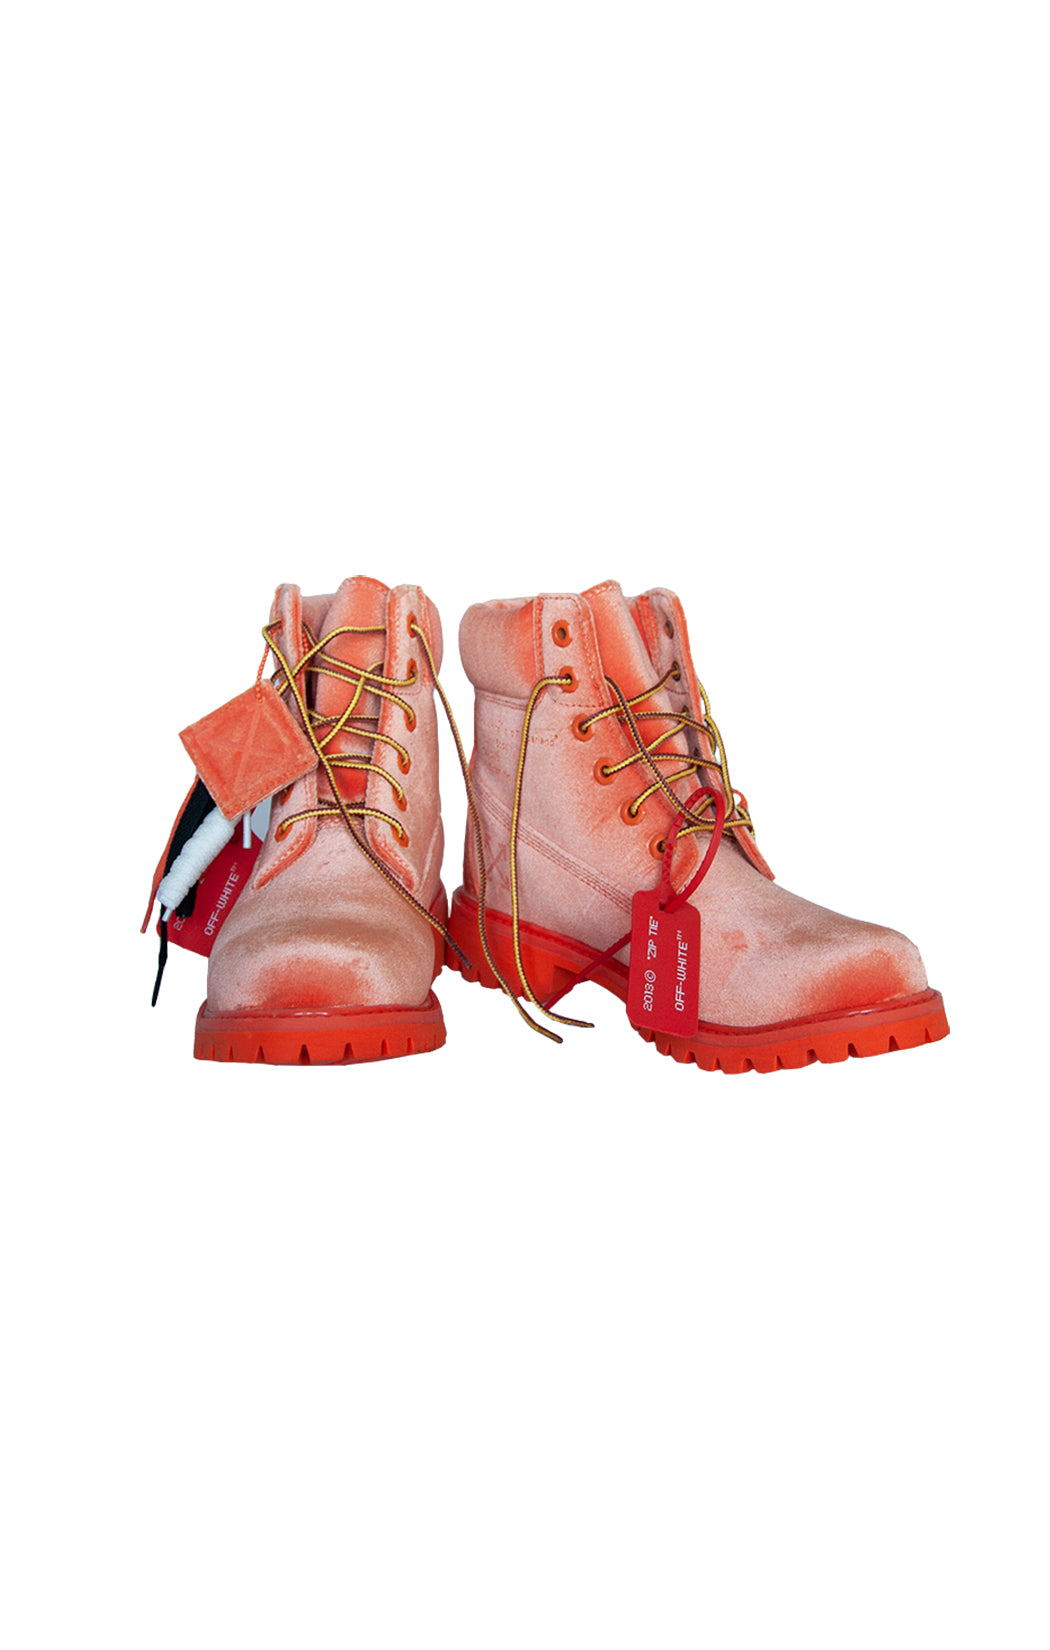 Front view of TIMBERLAND X OFF WHITE Boots Size: US 8